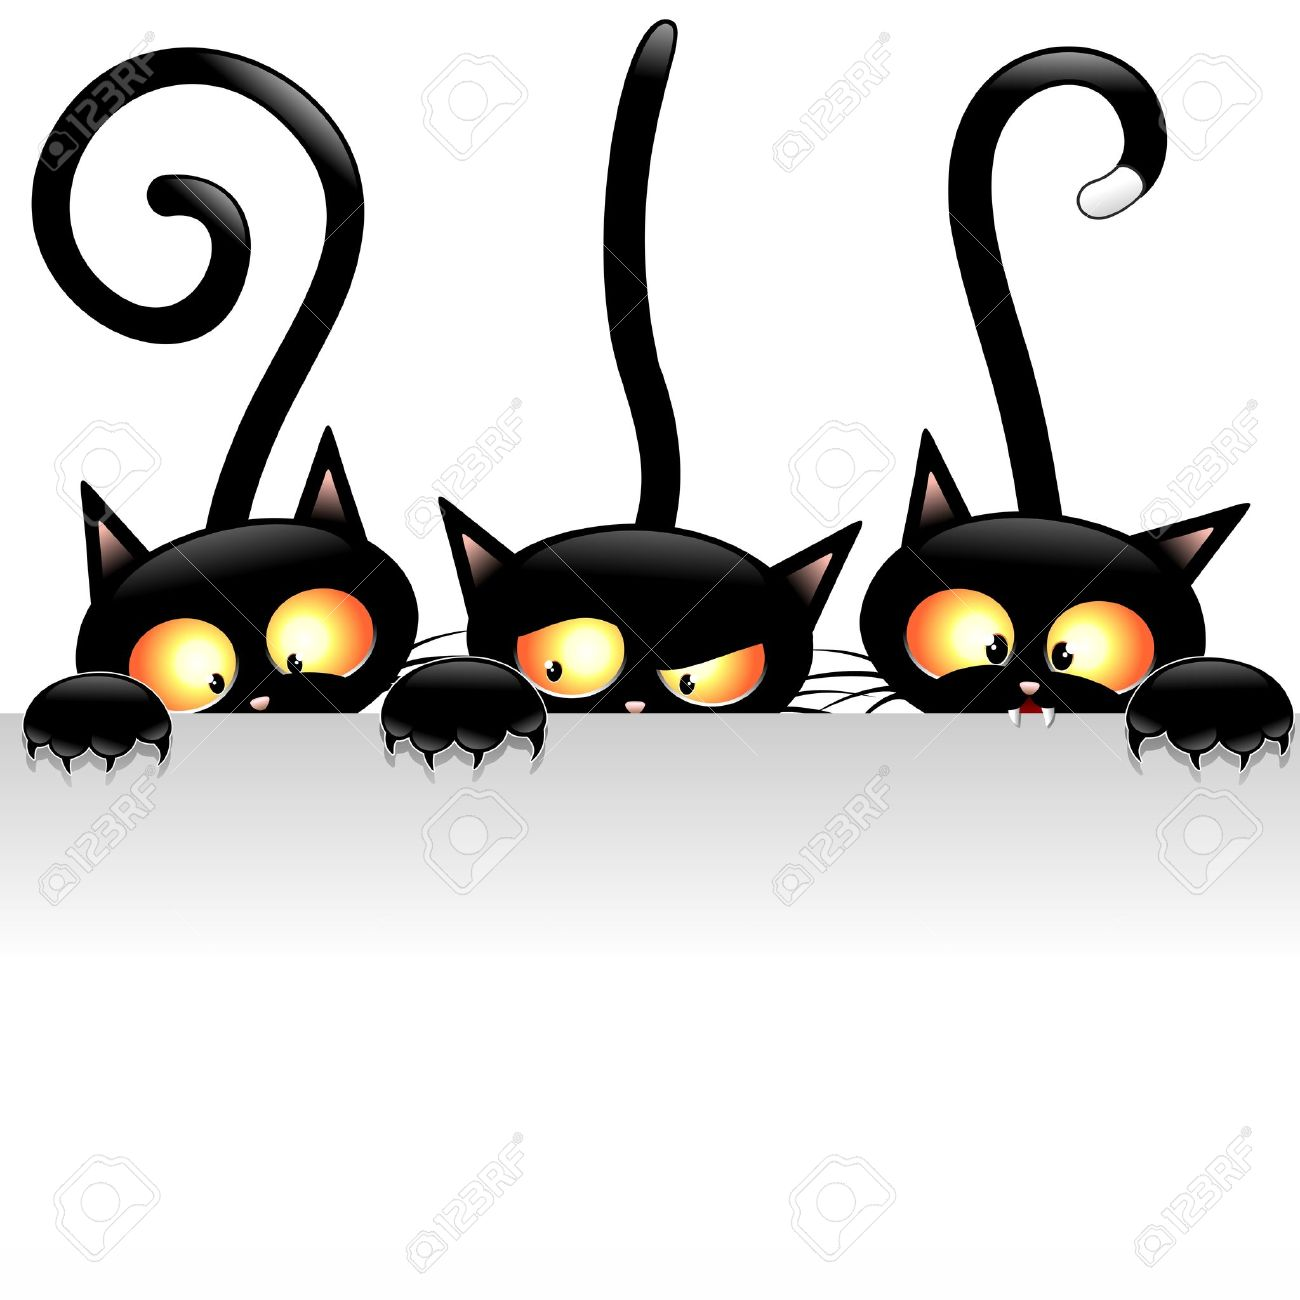 Funny Black Cats Cartoon with White Panel Stock Vector - 21975874